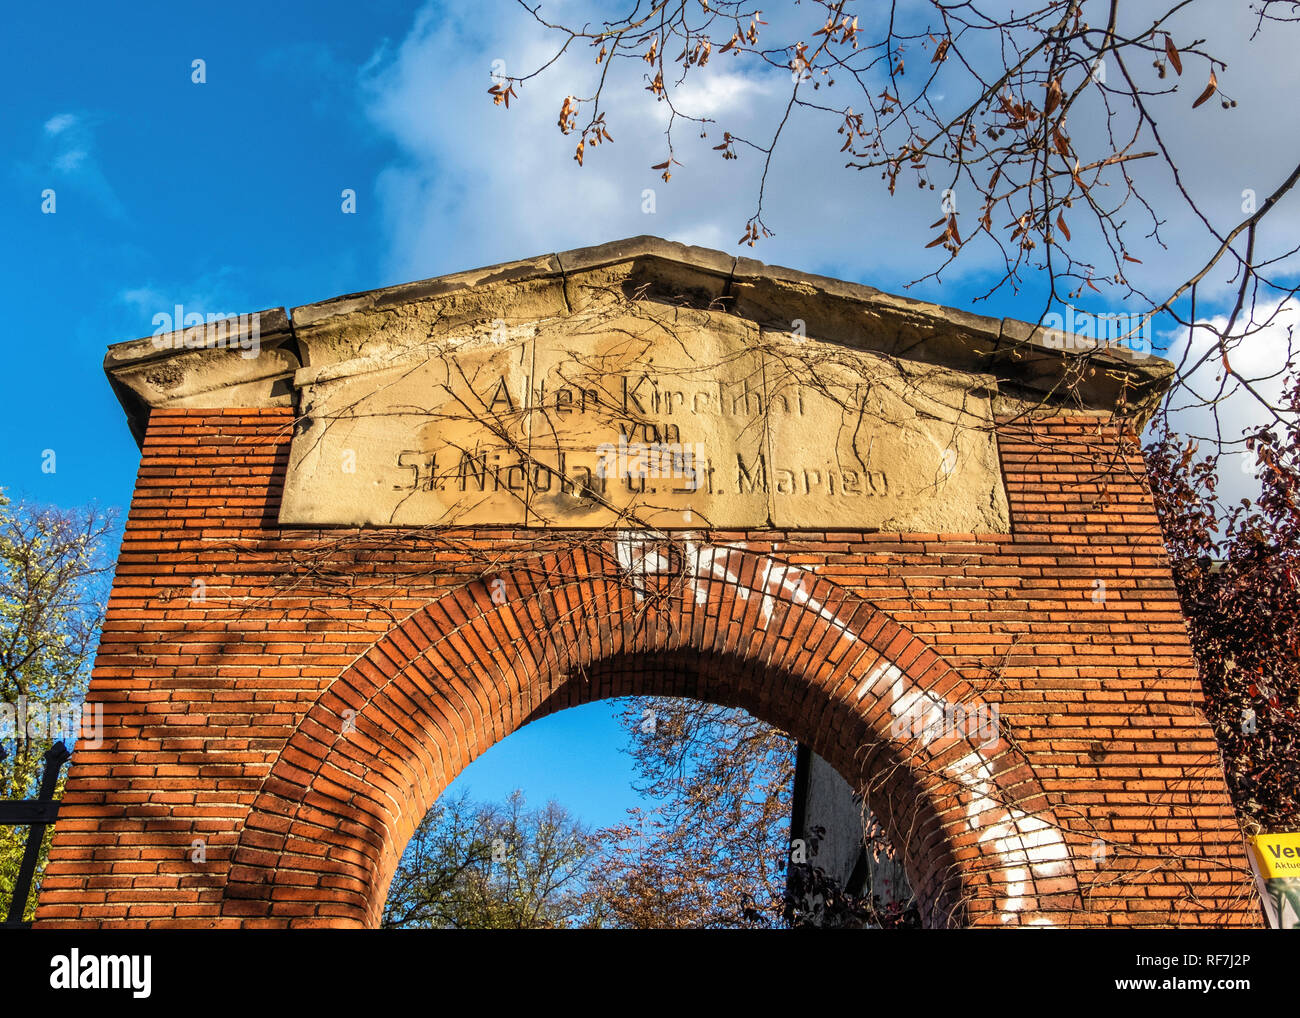 Entrance of Old Churchyard of Saint Nicholas and Saint Mary In Prenzlauer Allee, Berlin - Stock Image